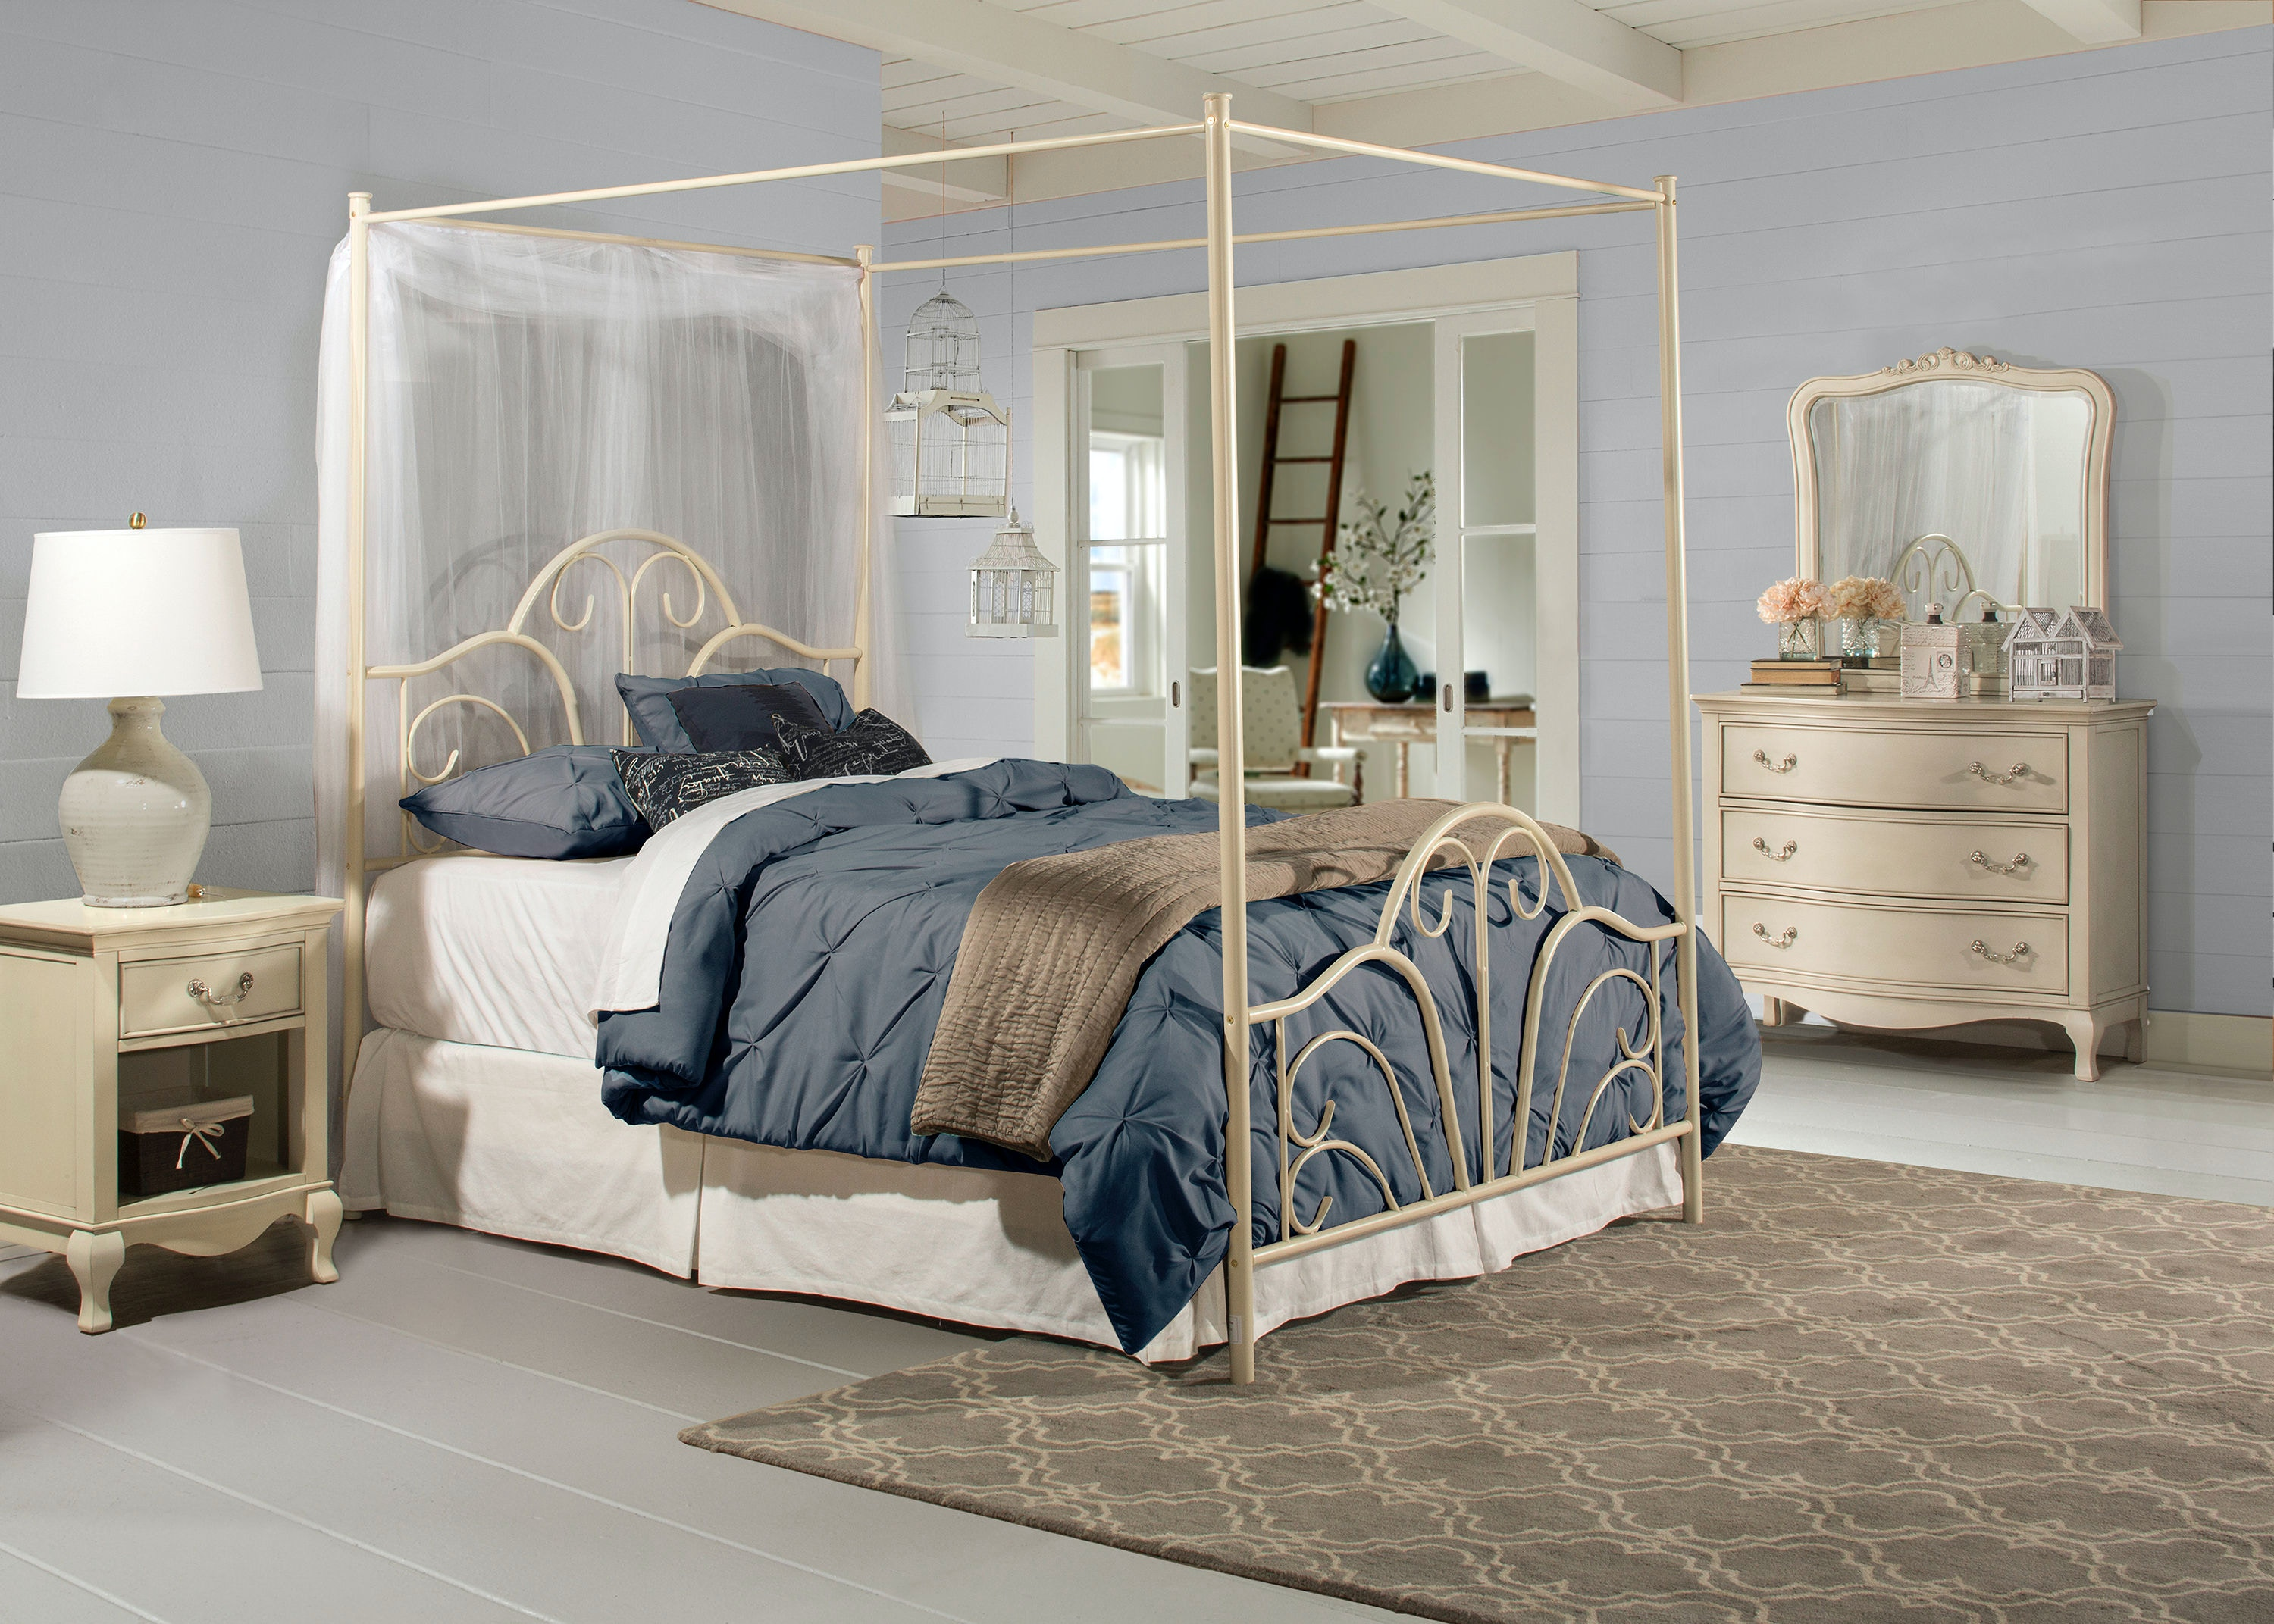 Hillsdale Furniture Dover Bed Set - King - with Canopy and Legs - Bed Frame Not & Hillsdale Furniture Bedroom Dover Bed Set - King - with Canopy and ...